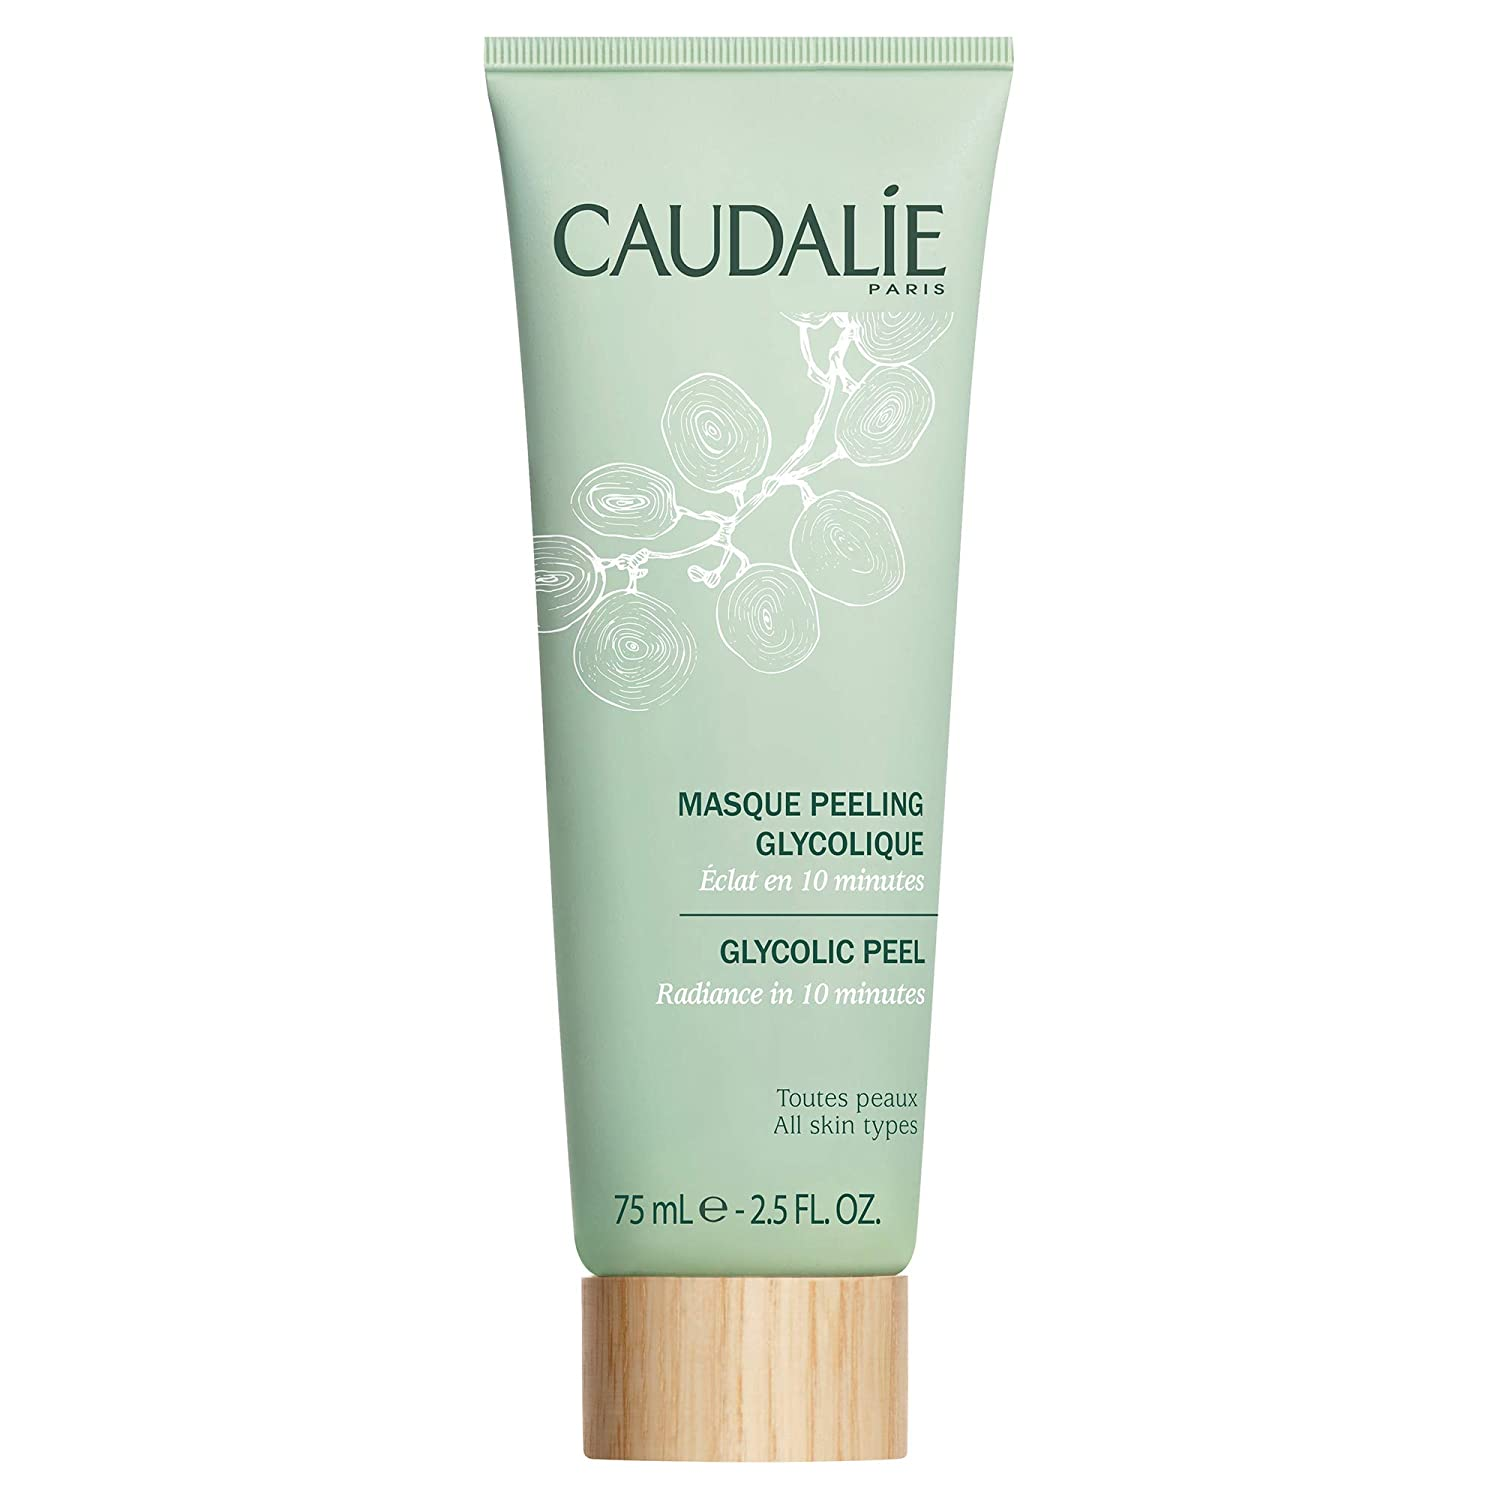 Brightening Glycolic Peel Mask by Caudalie